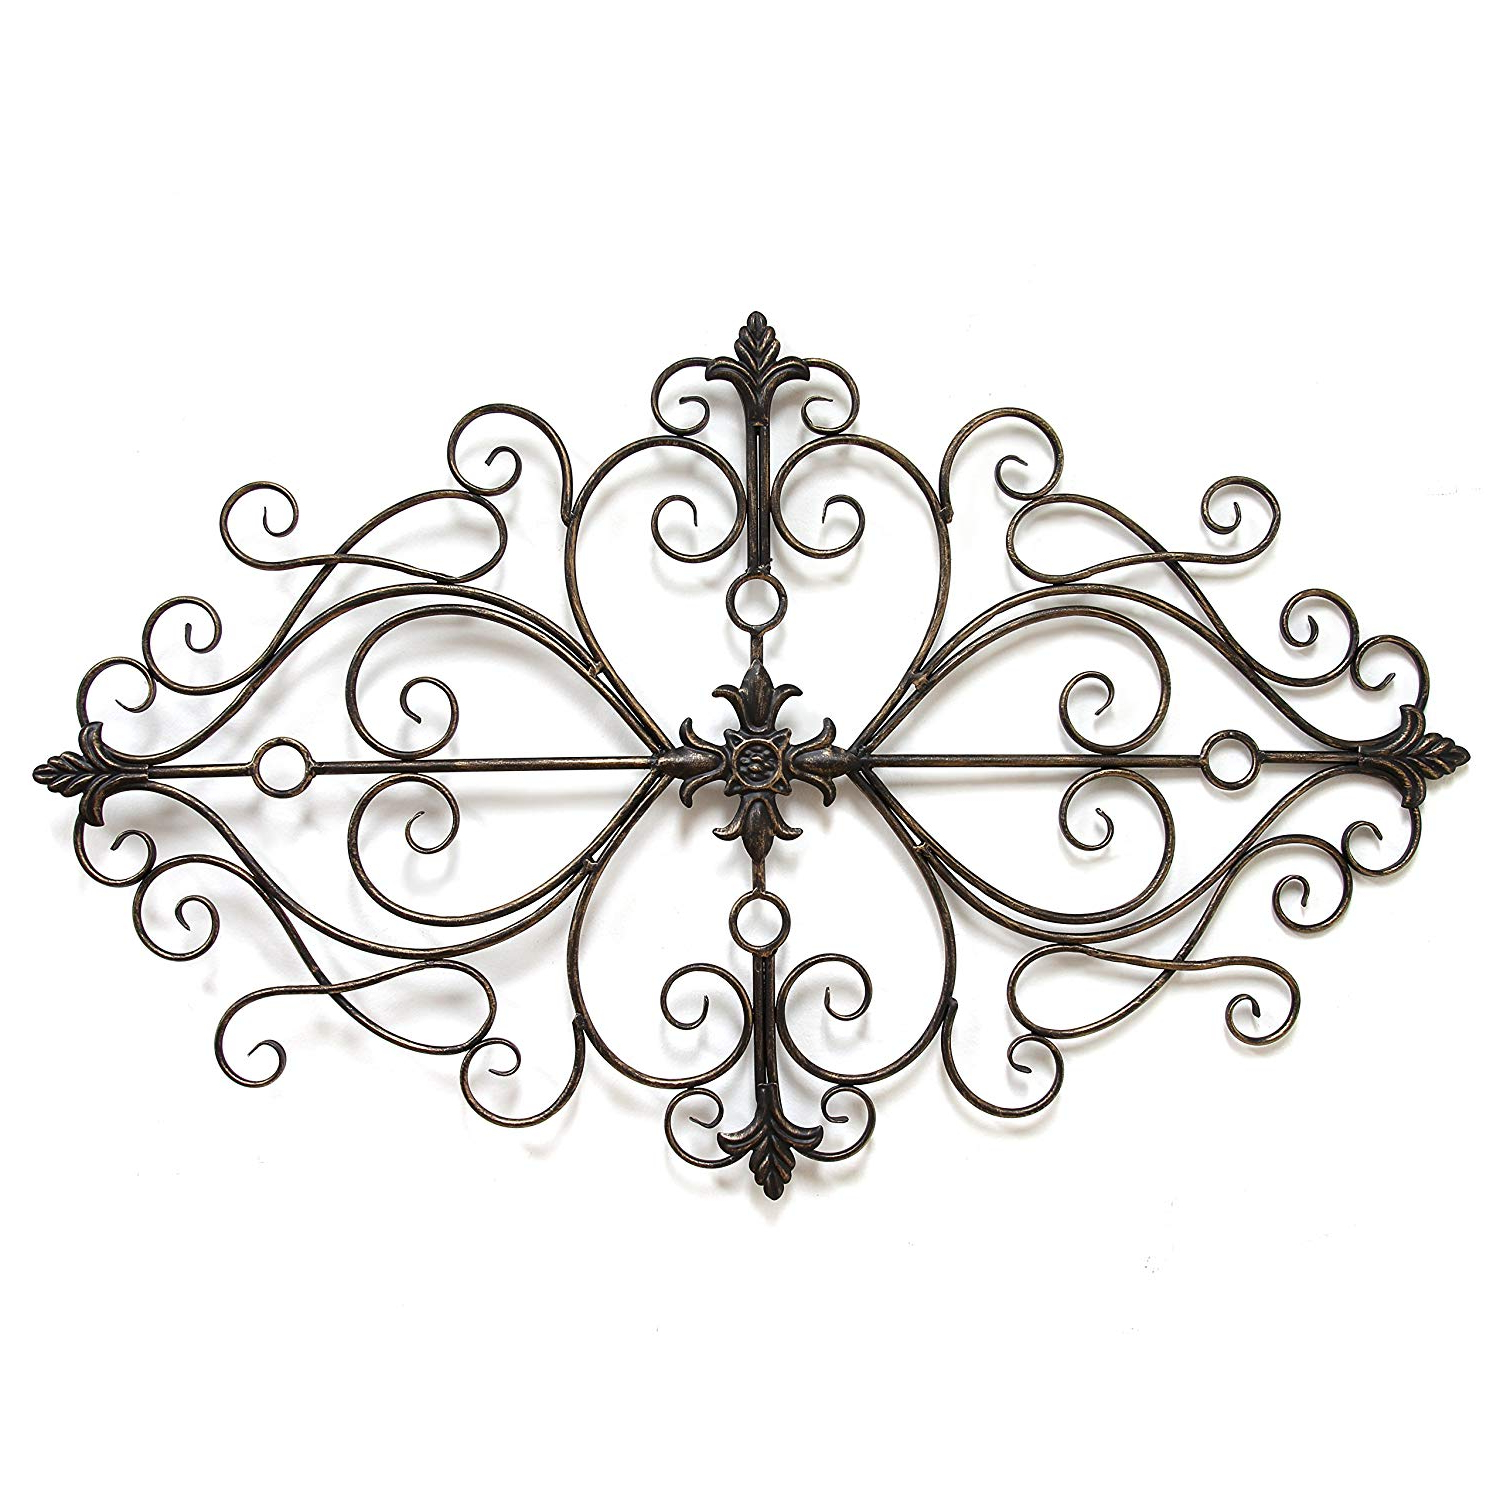 Amazon: Stratton Home Decor Shd0138 Traditional Scroll Wall Pertaining To Newest Ornate Scroll Wall Decor (Gallery 7 of 20)